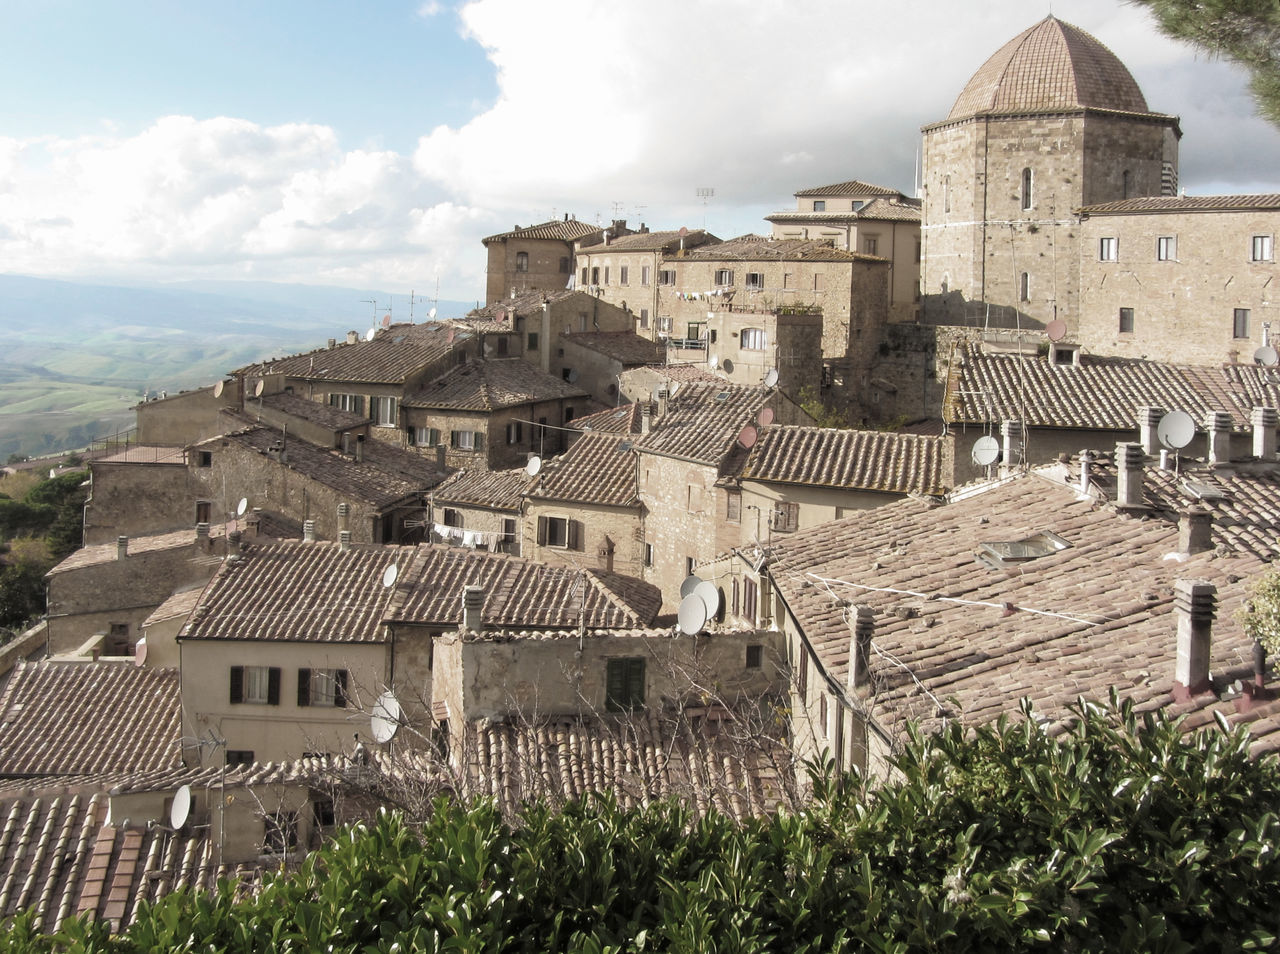 Panorama of Volterra village, province of Pisa . Tuscany, Italy Alabaster Ancient Antique Architecture Civilization Etruscan Hamlet High Hill Historic Italy Medieval Panorama Pisa Road Skyline Stony Tourism Tower Town Travel Tuscany View Village Volterra